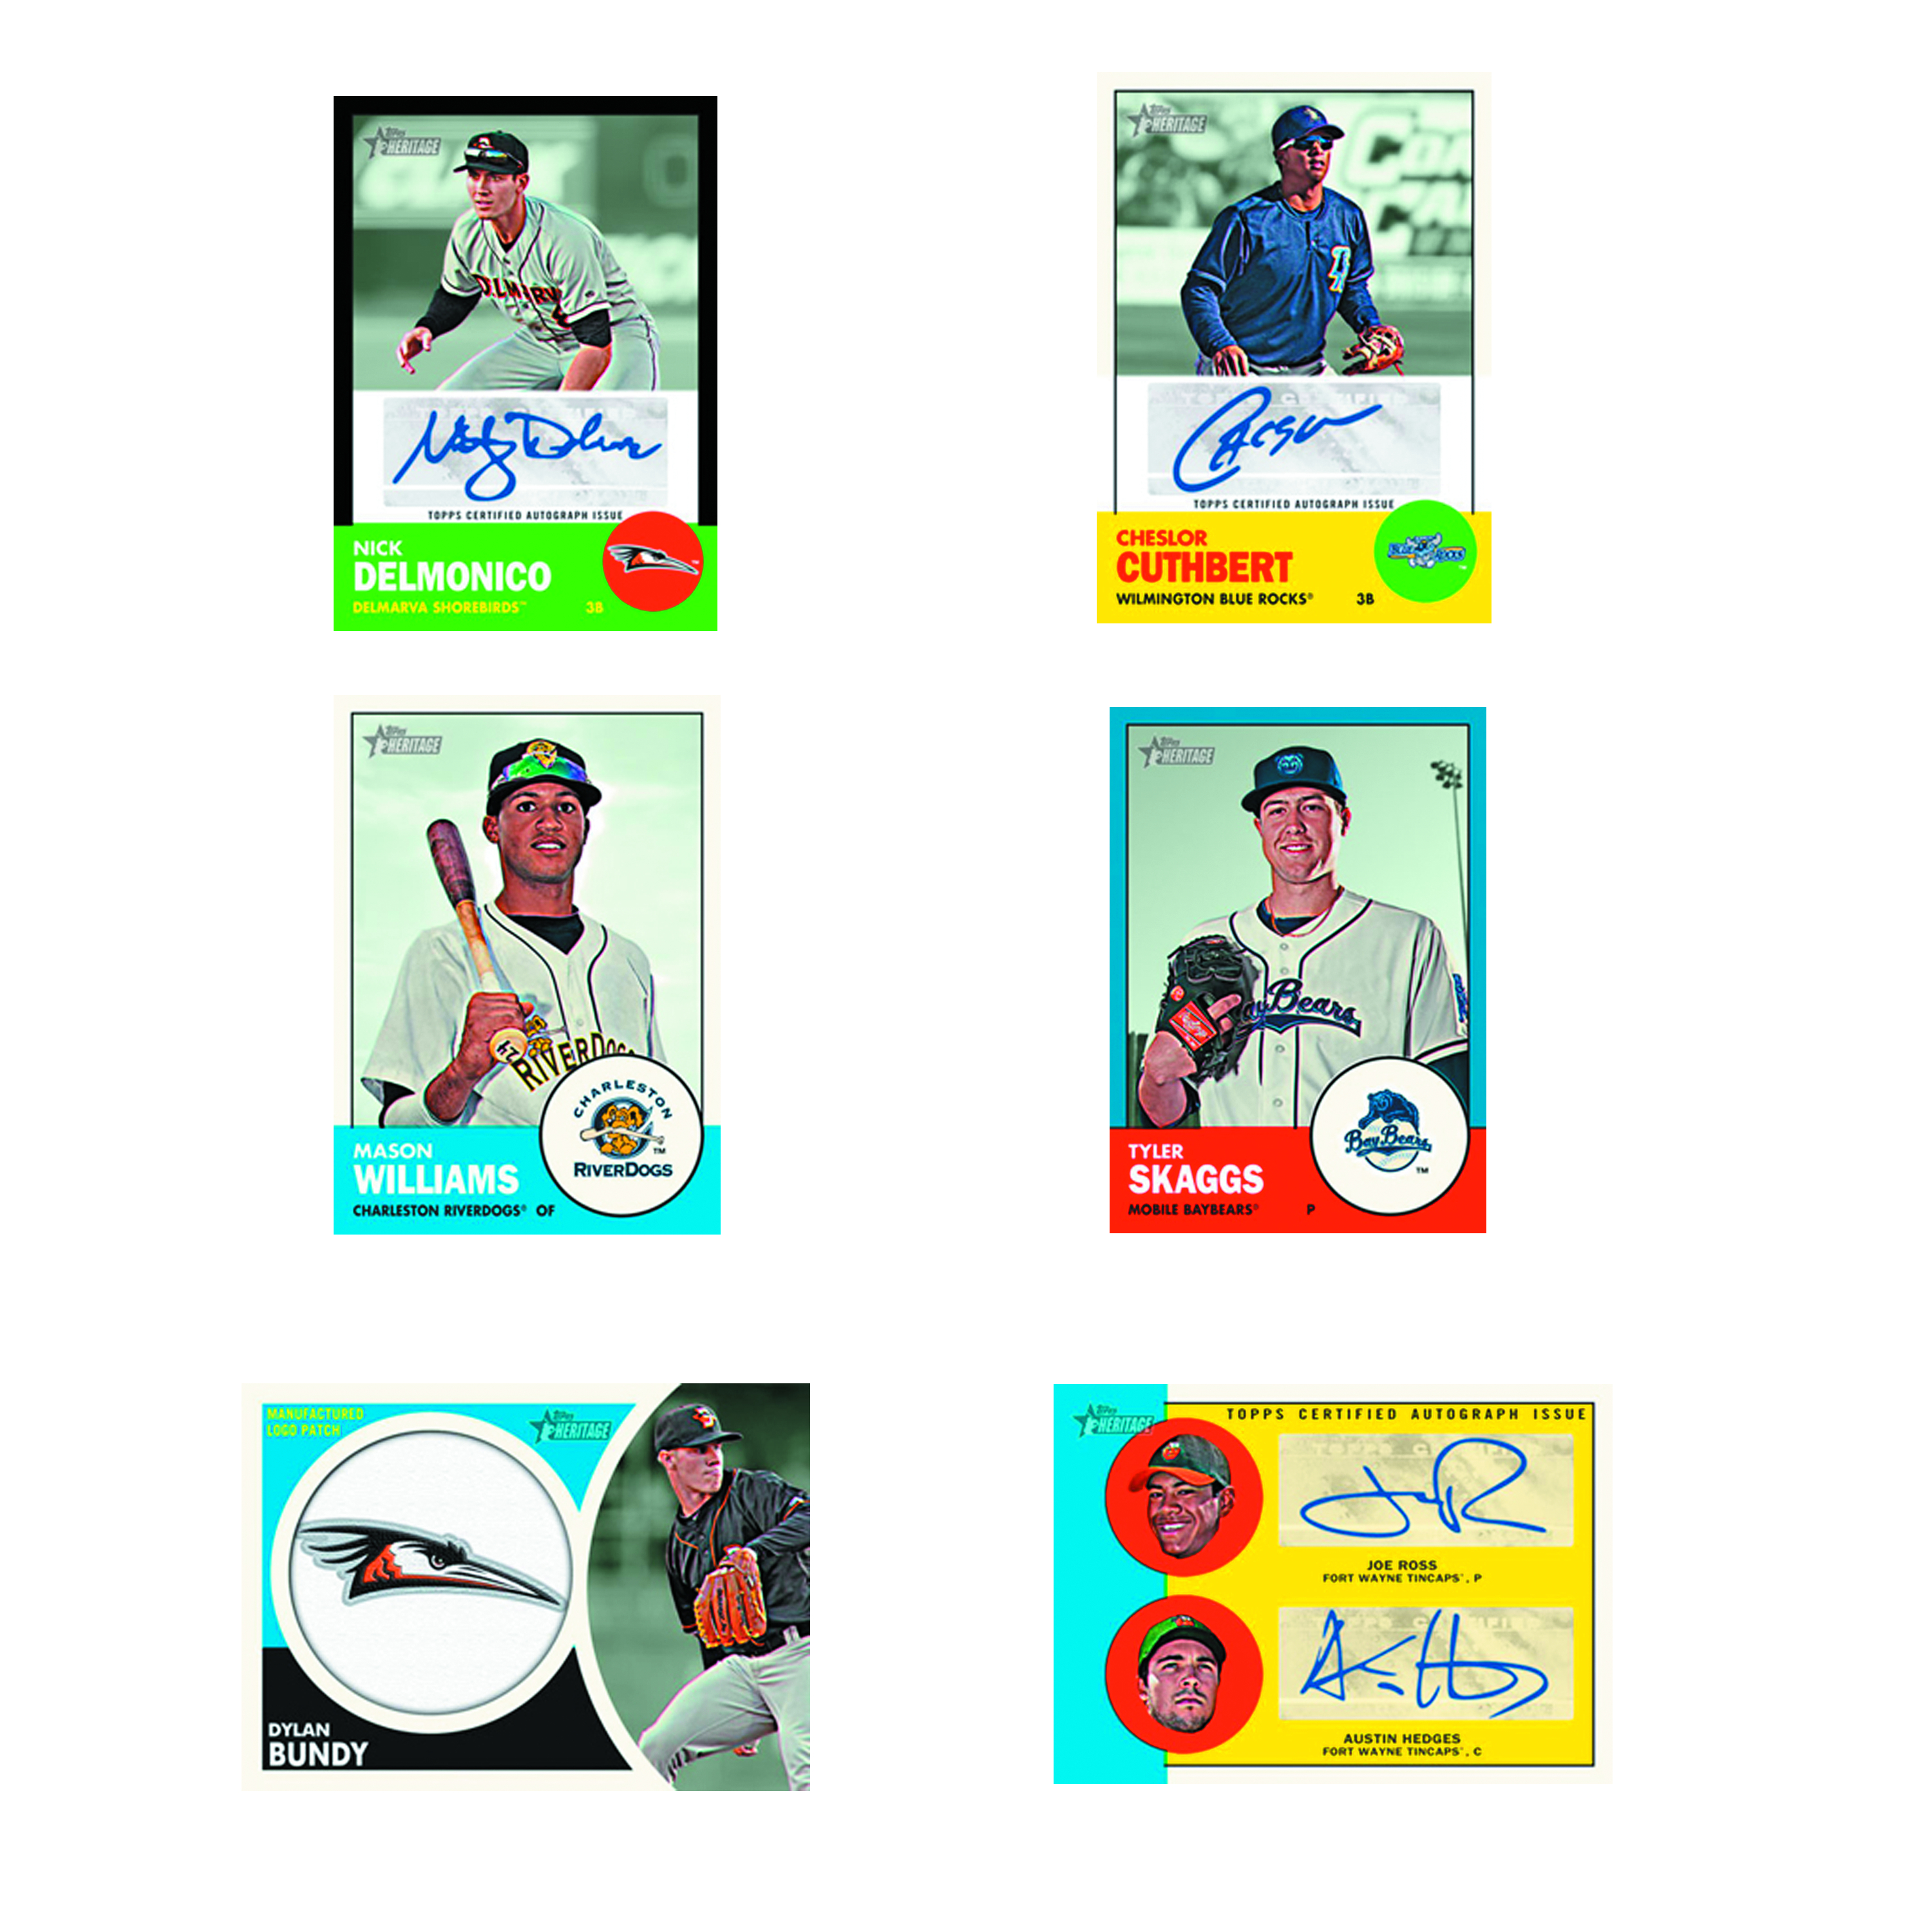 TOPPS 2012 HERITAGE MINOR LEAGUE BASEBALL T/C BOX